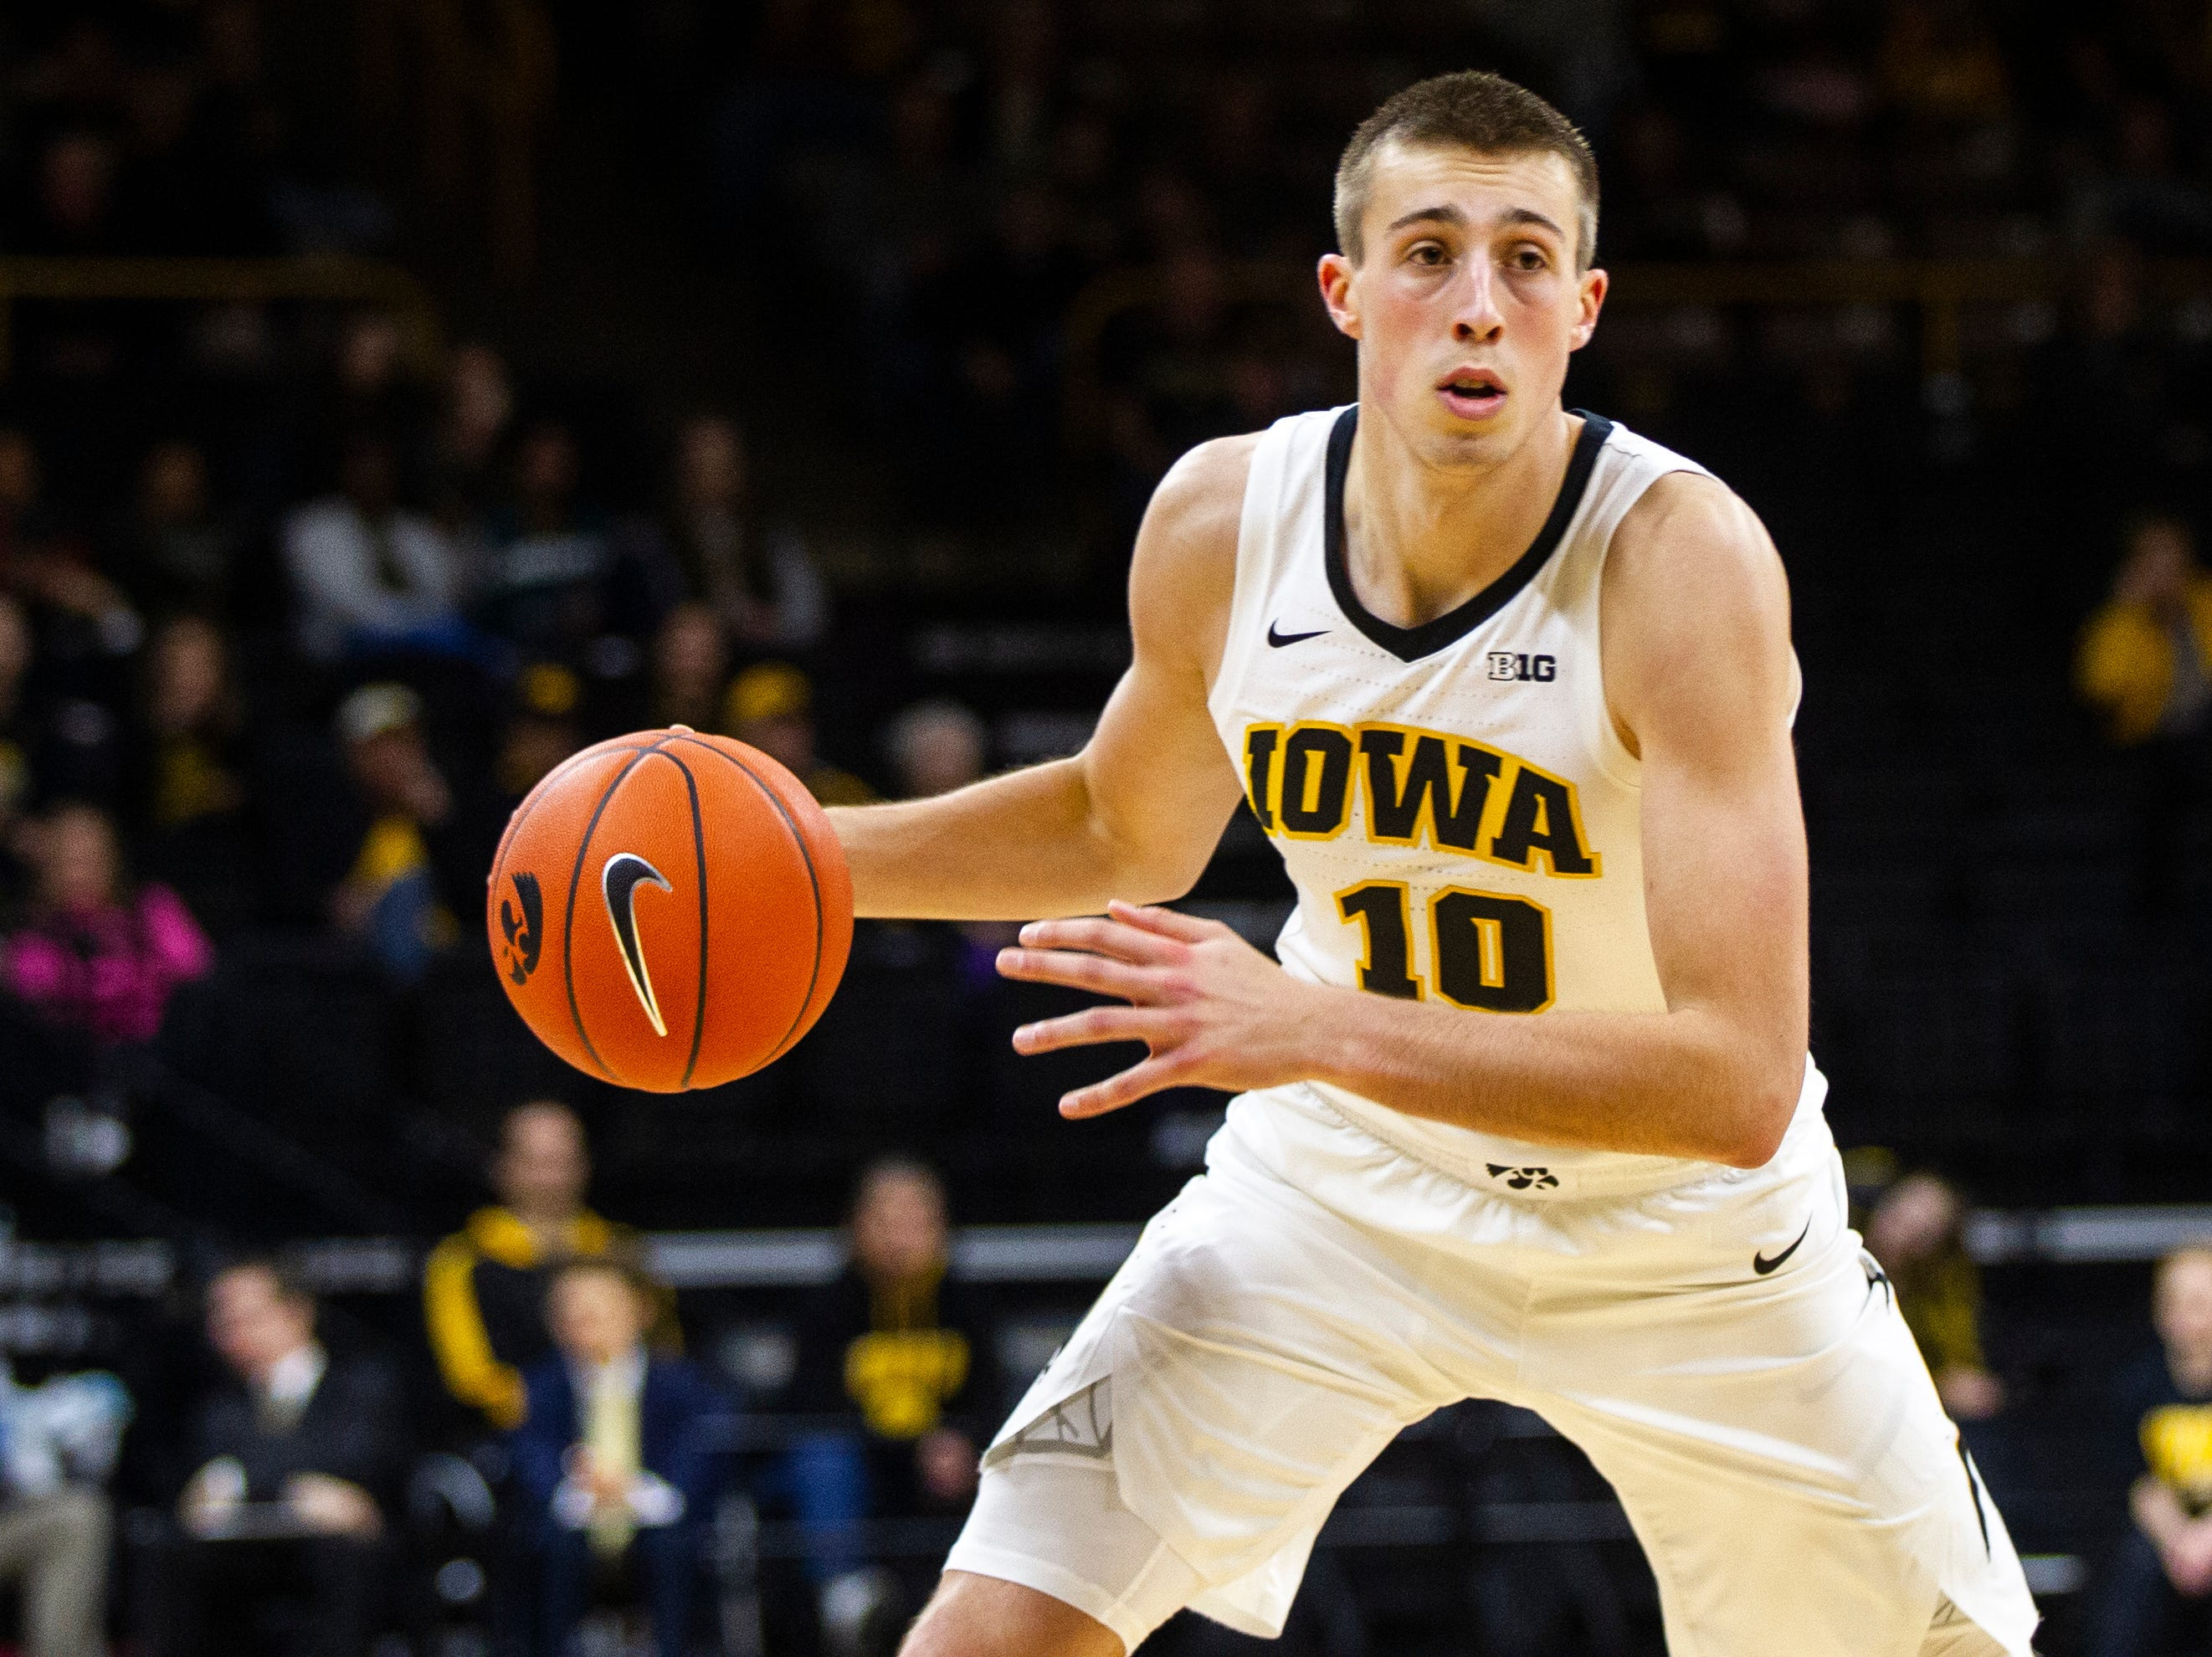 Iowa guard Joe Wieskamp (10) drives to the hoop during a men's basketball exhibition game on Sunday, Nov. 4, 2018, at Carver-Hawkeye Arena in Iowa City.